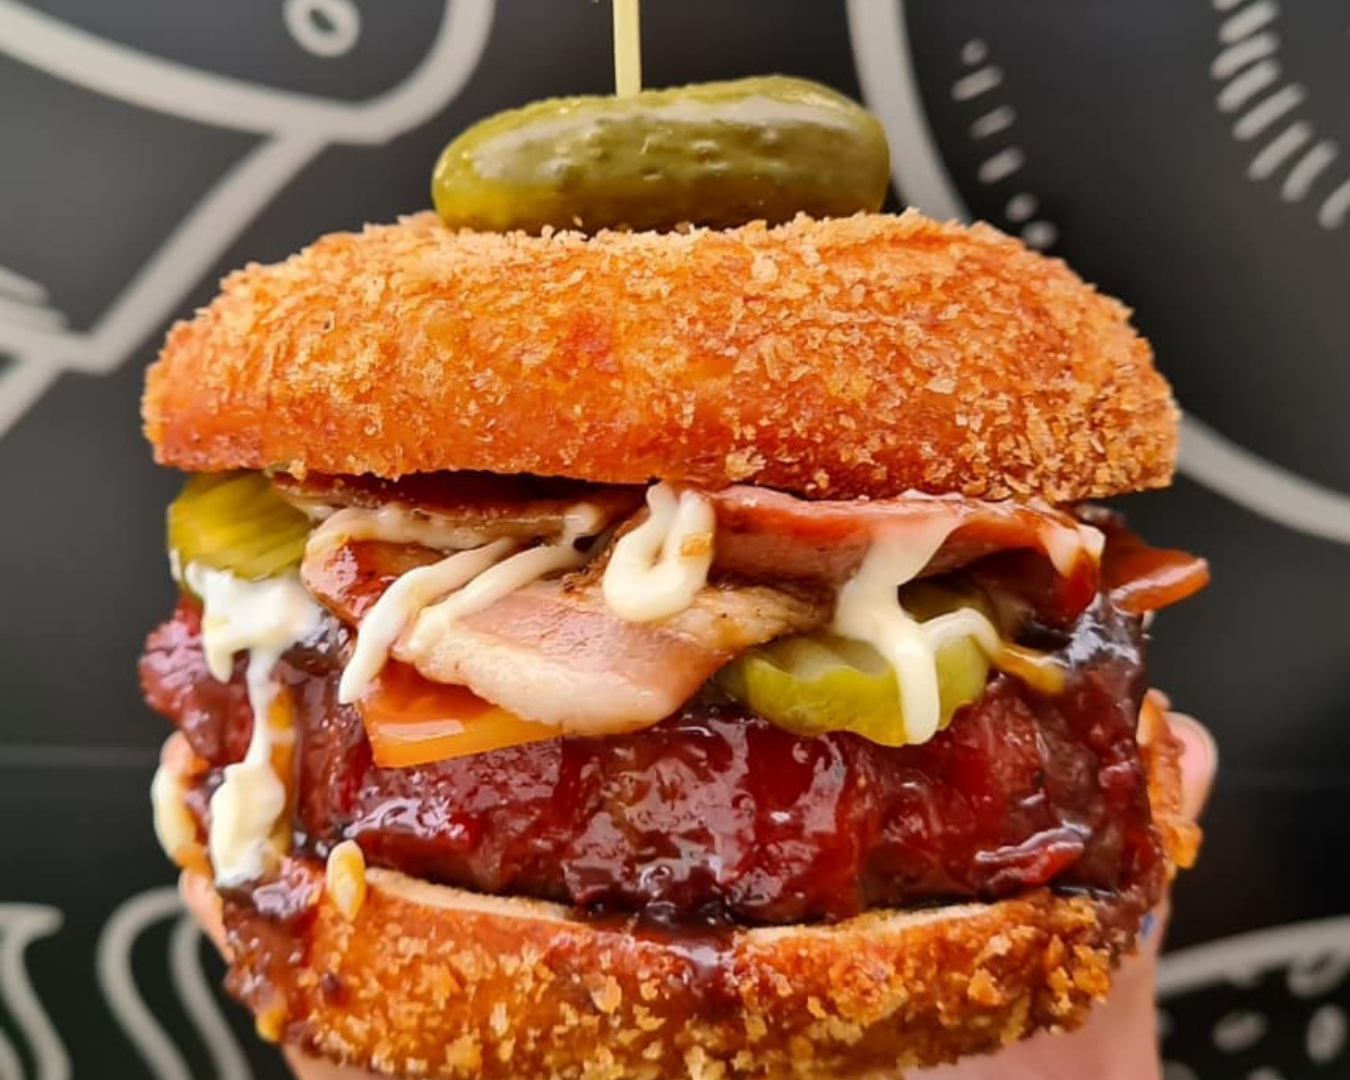 Meatloaf with streaky smoked bacon, honey bourbon glaze, smoked cheese, pickles and mayonnaise in a crumbed housemade donut bun, with crinkle-cut fries ($25)